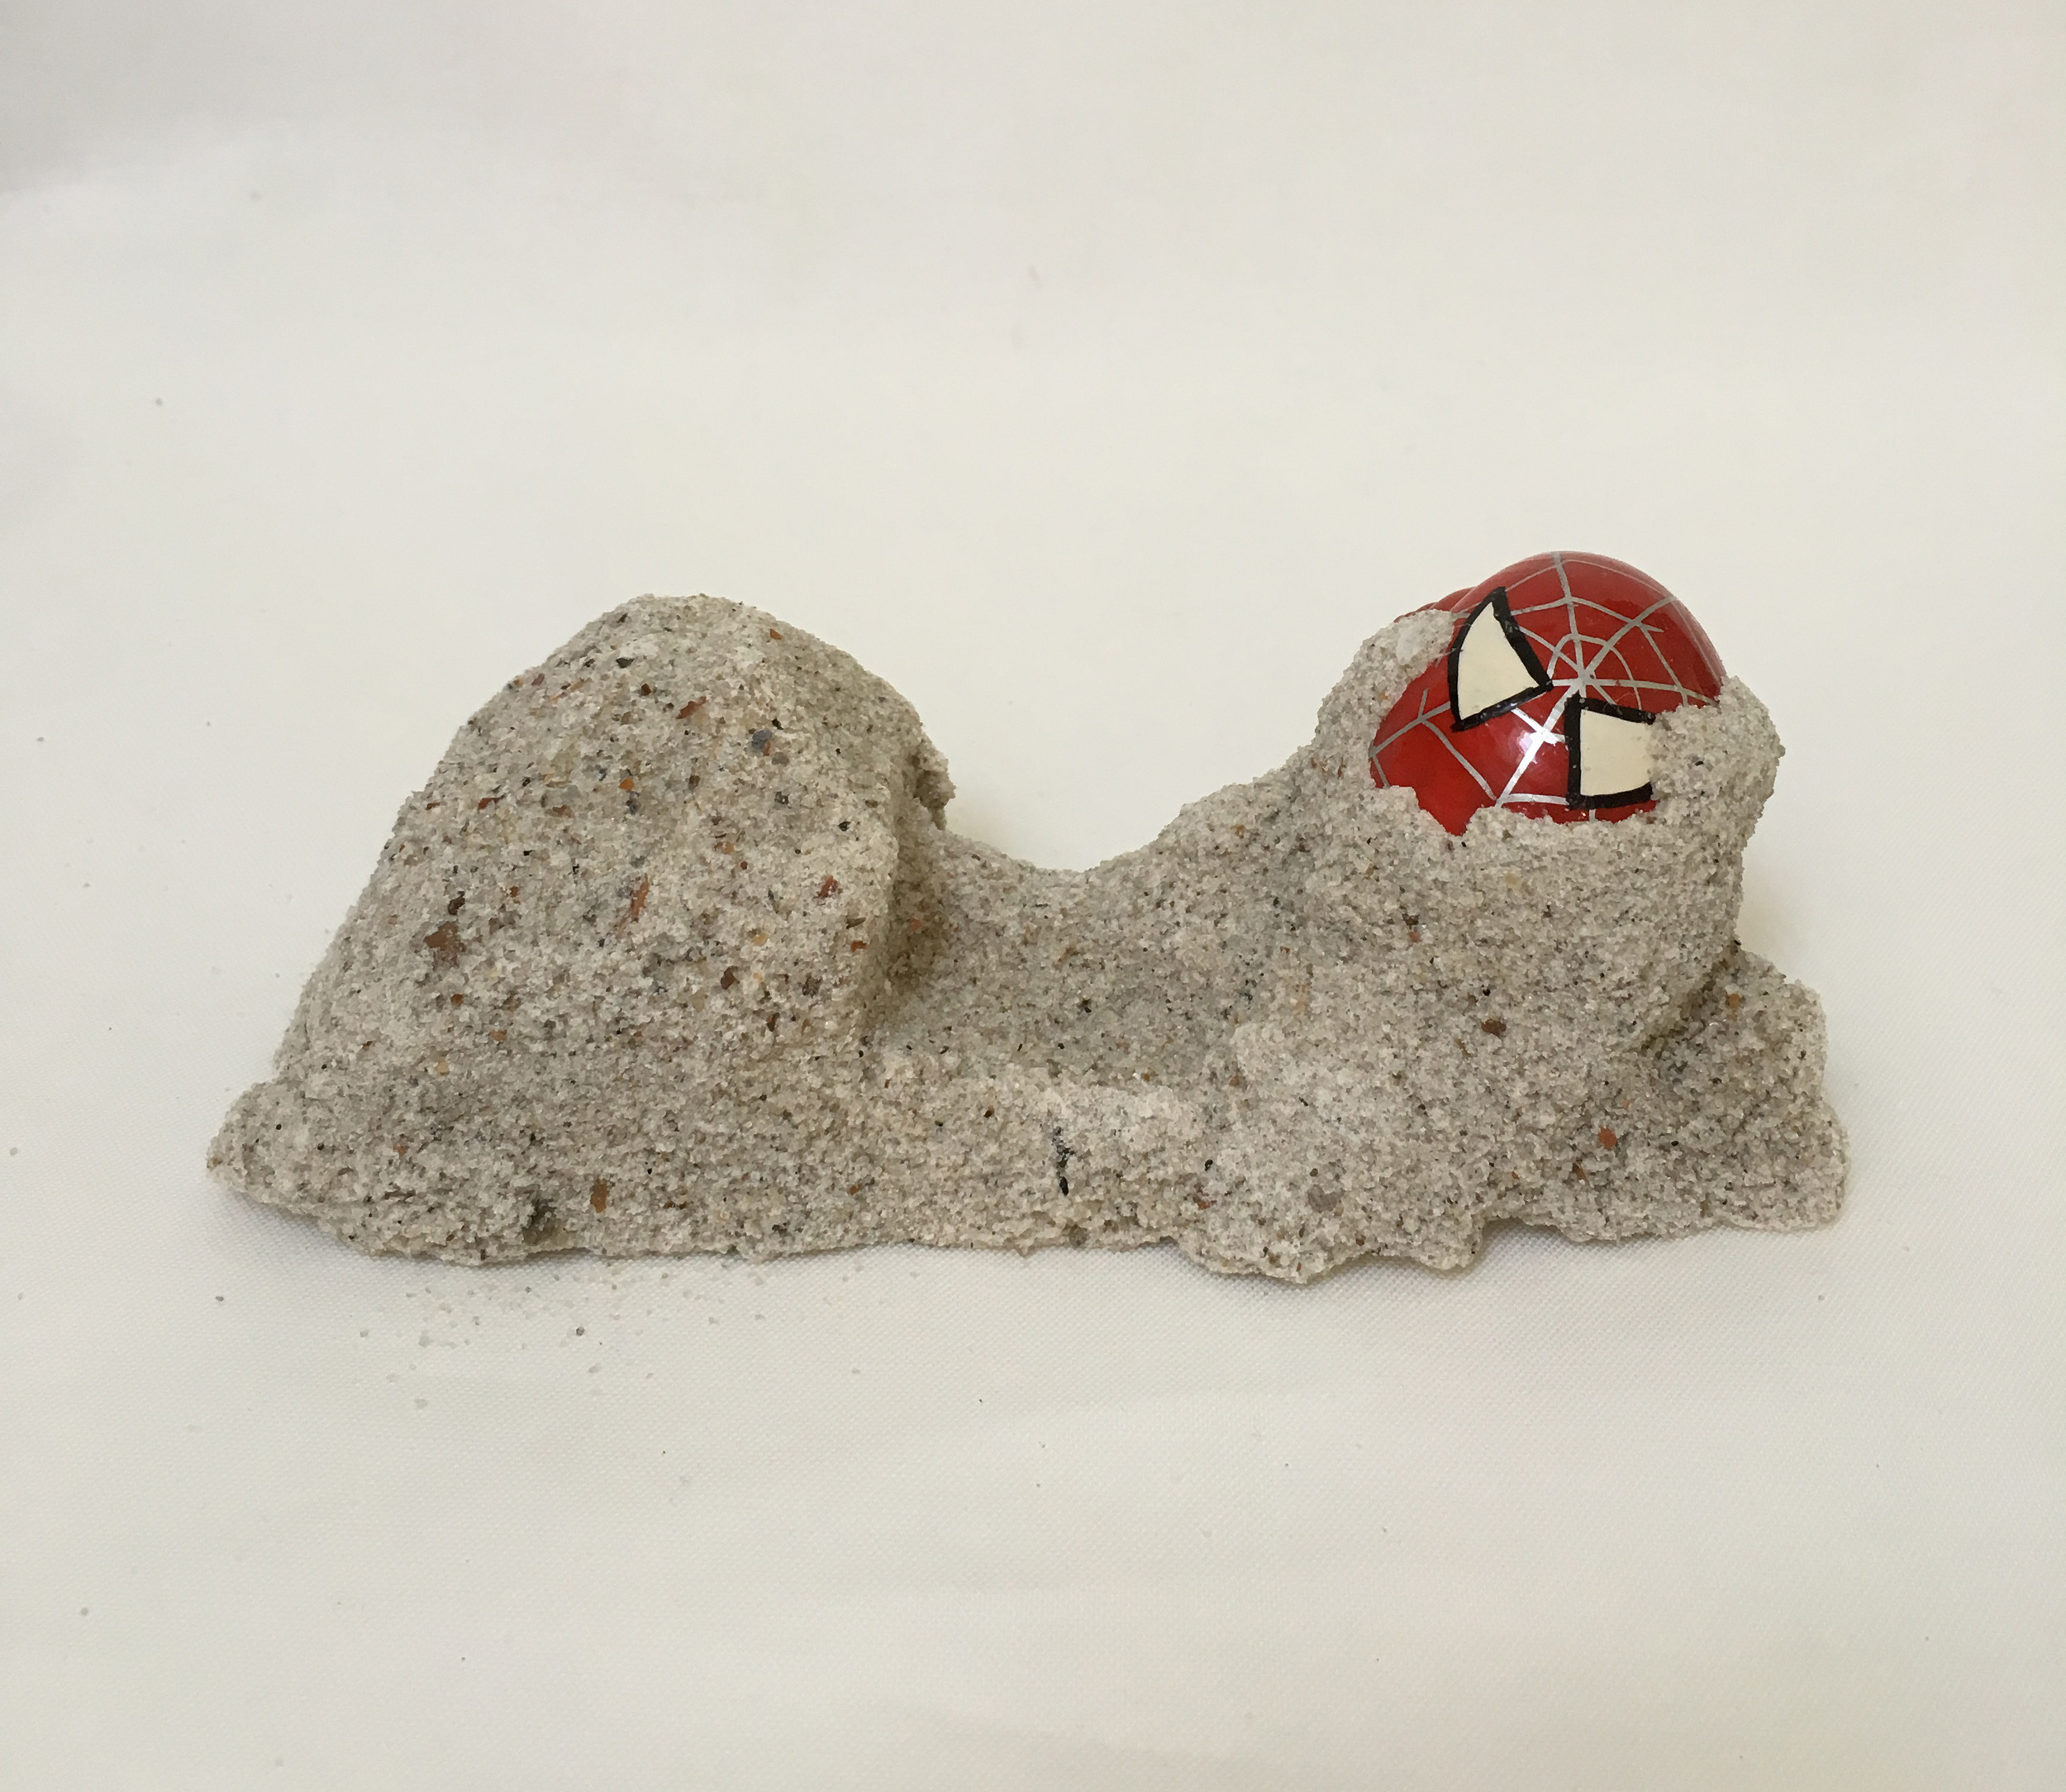 Untitled (Hermit-Man Remains)  , 2015 3.5 x 2 x 2.5 inches hand painted hermit crab shells, plaster and sand